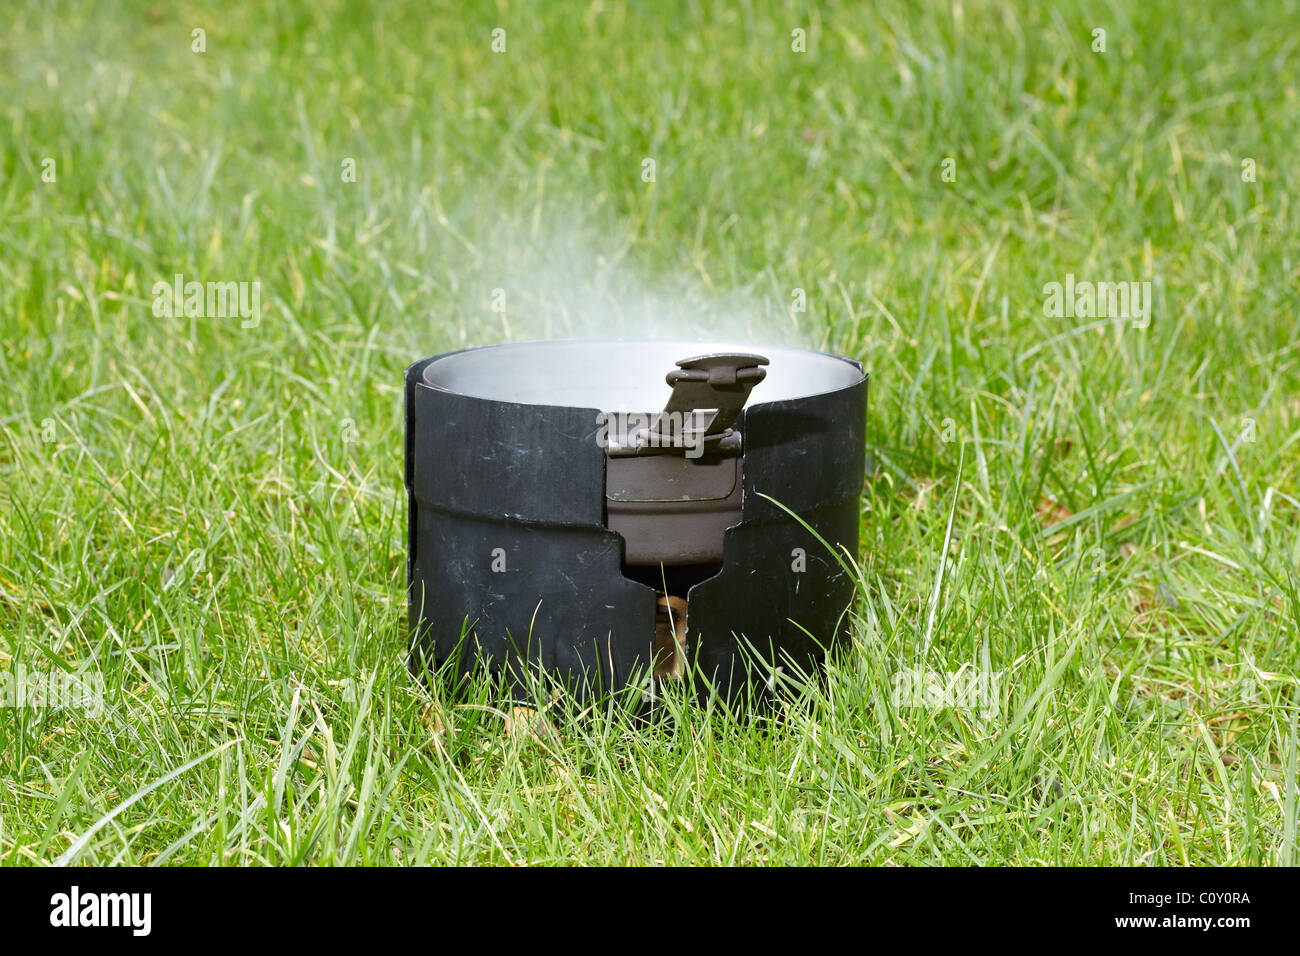 Swedish Army Tangia Mess Kit for cooking food - Stock Image